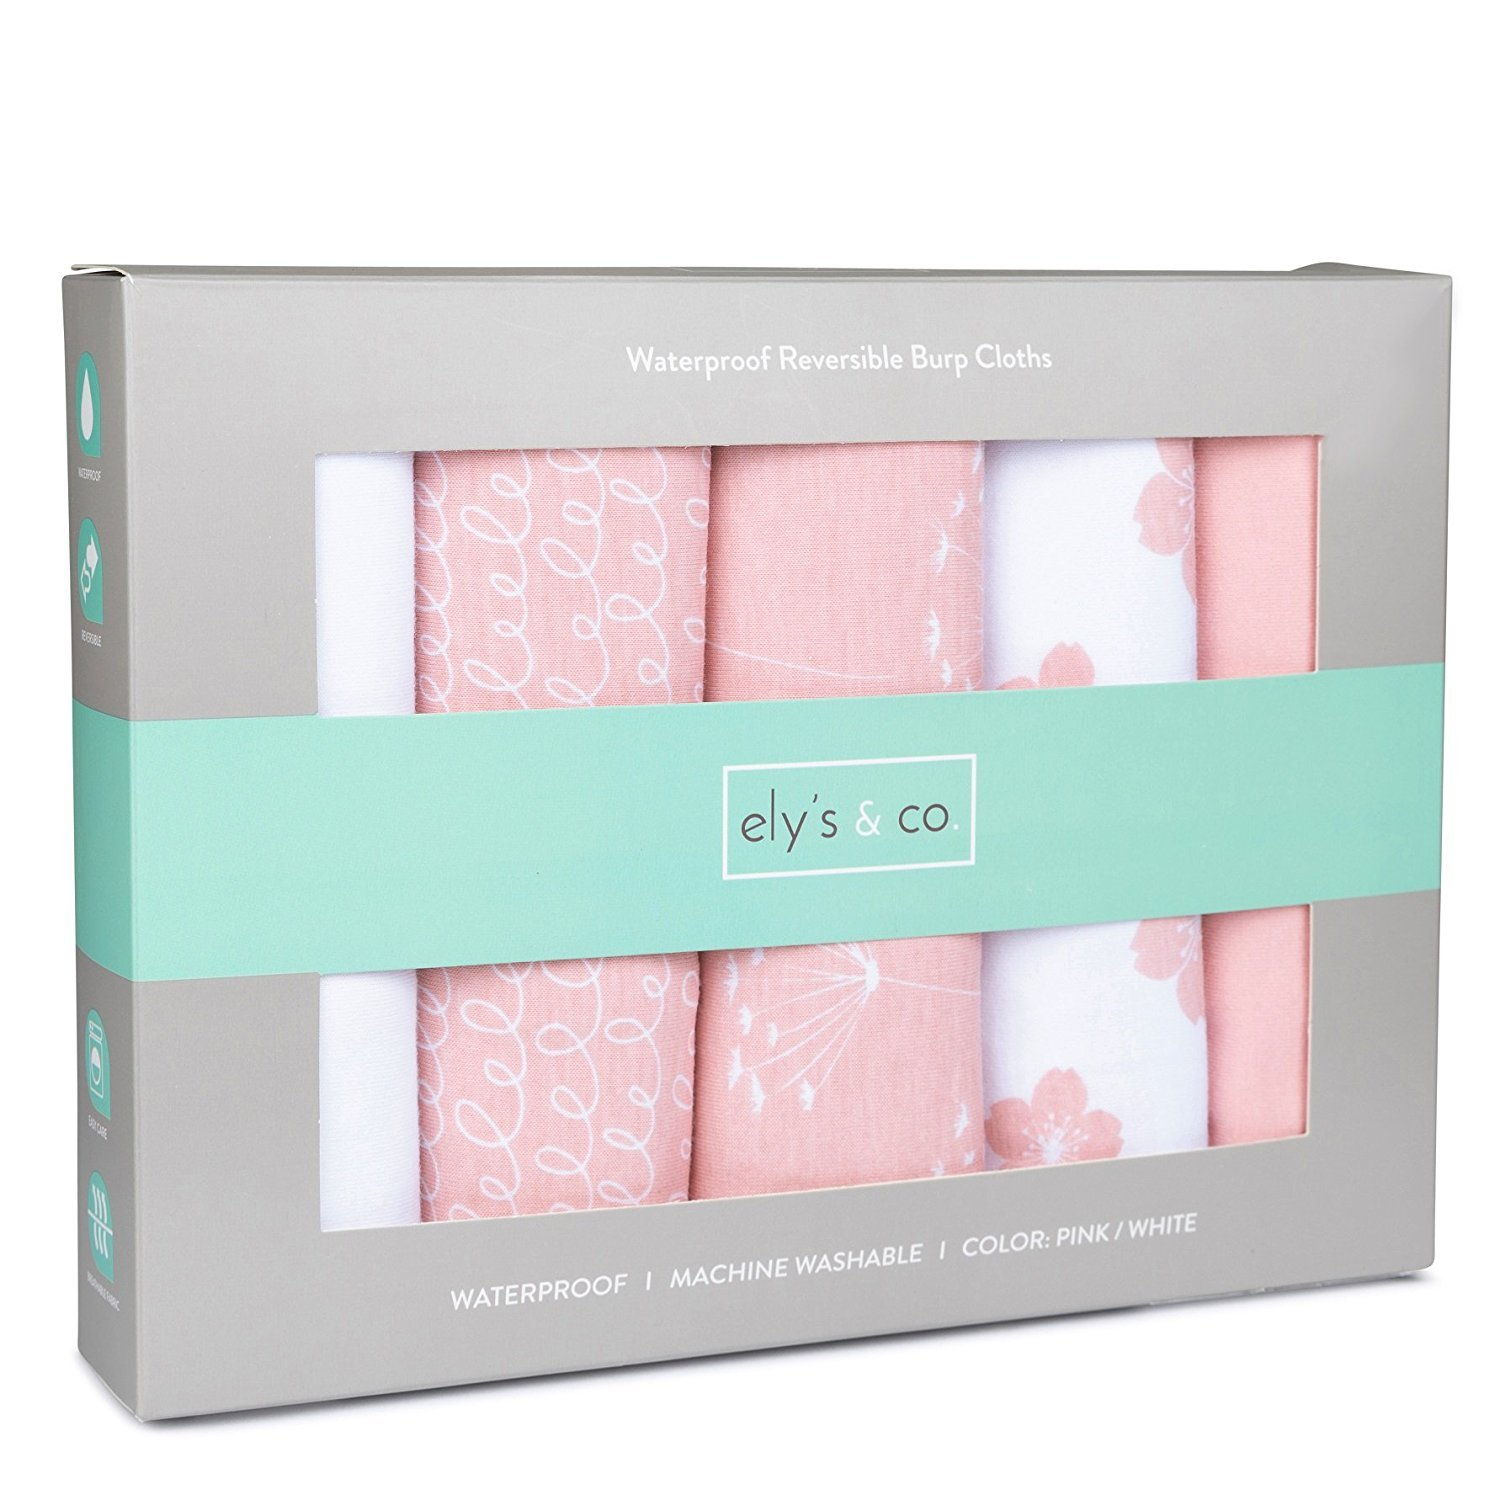 """Baby Burp Cloth,Waterproof Reversible Jersey Cotton Large Burp Cloths, Cloth Diapers 20"""" x 12"""" 5 Pack Pink Combo for Baby Girl by Ely's & Co"""